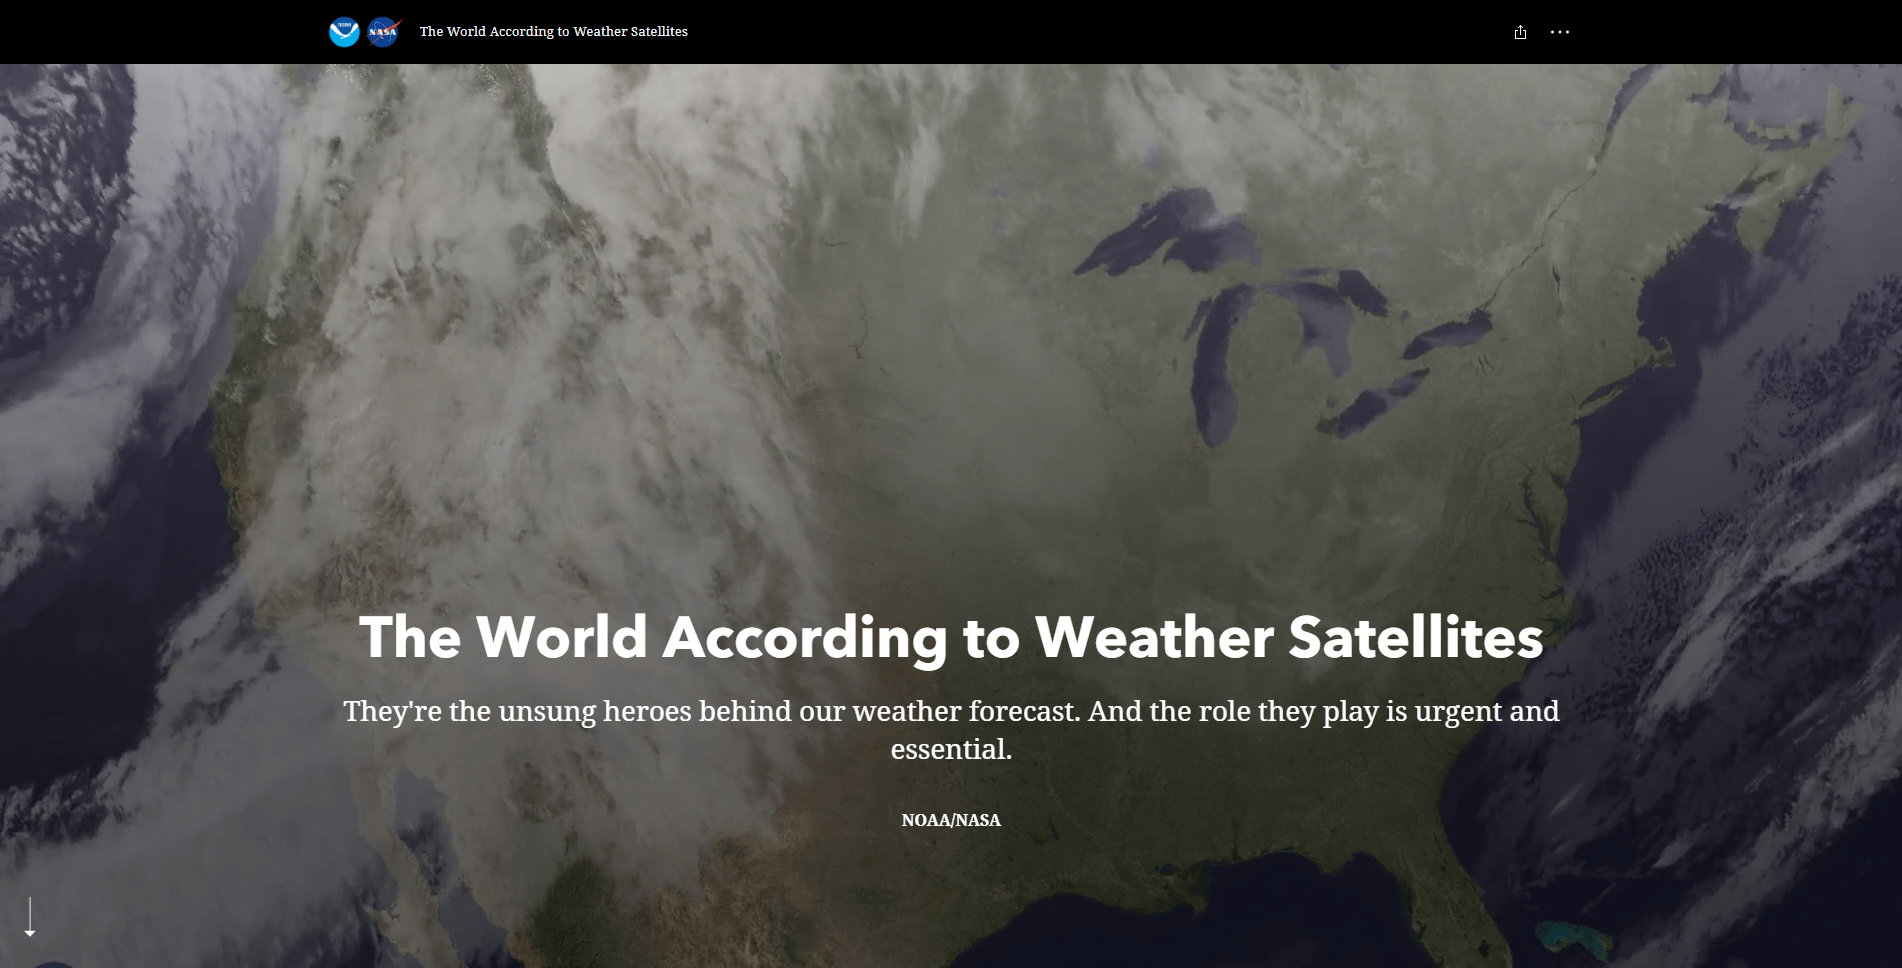 Story cover for The World According to Weather Satellites by NOAA/NASA